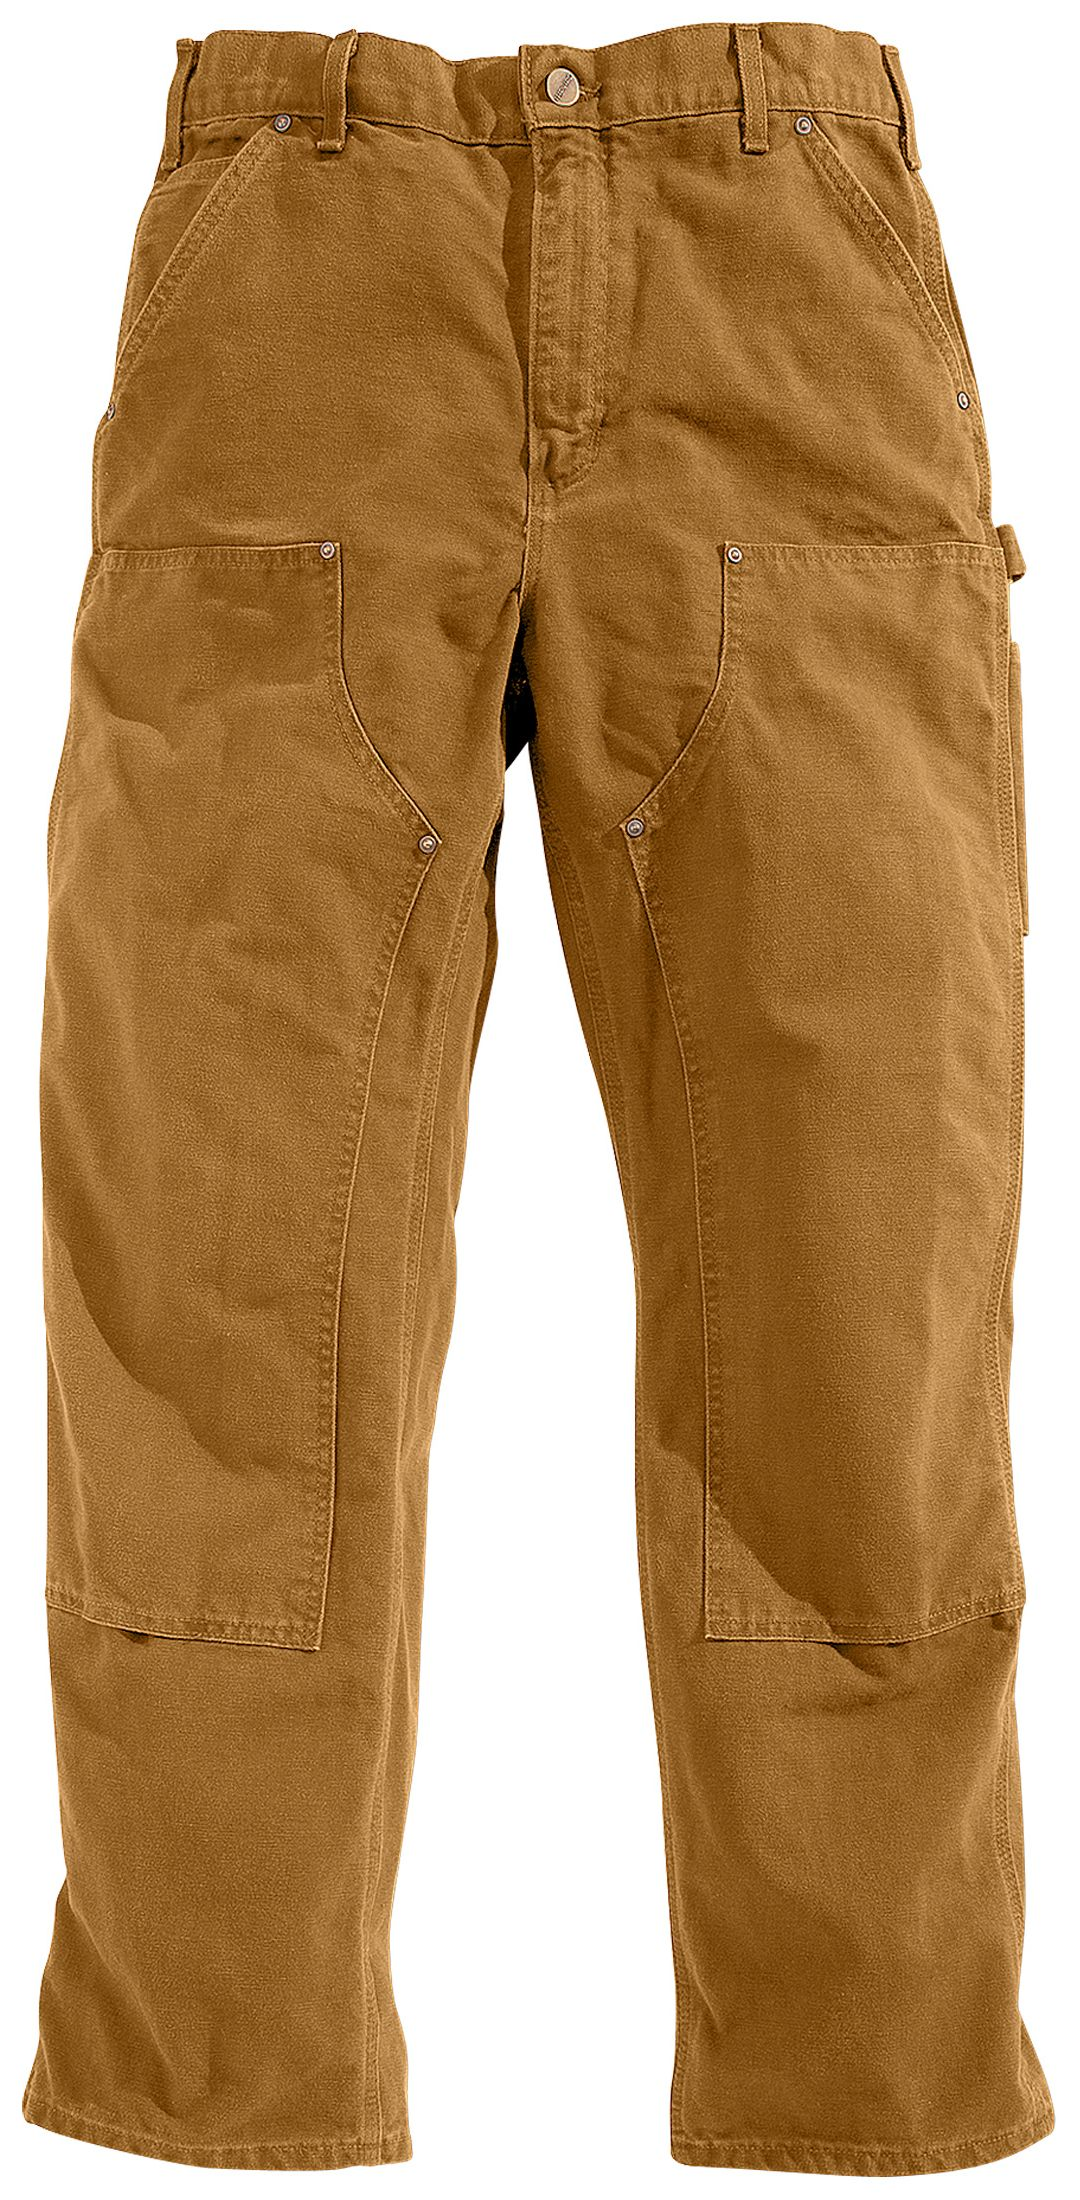 742a0e473ab26 Carhartt Men's Double Front Work Dungarees | DICK'S Sporting Goods